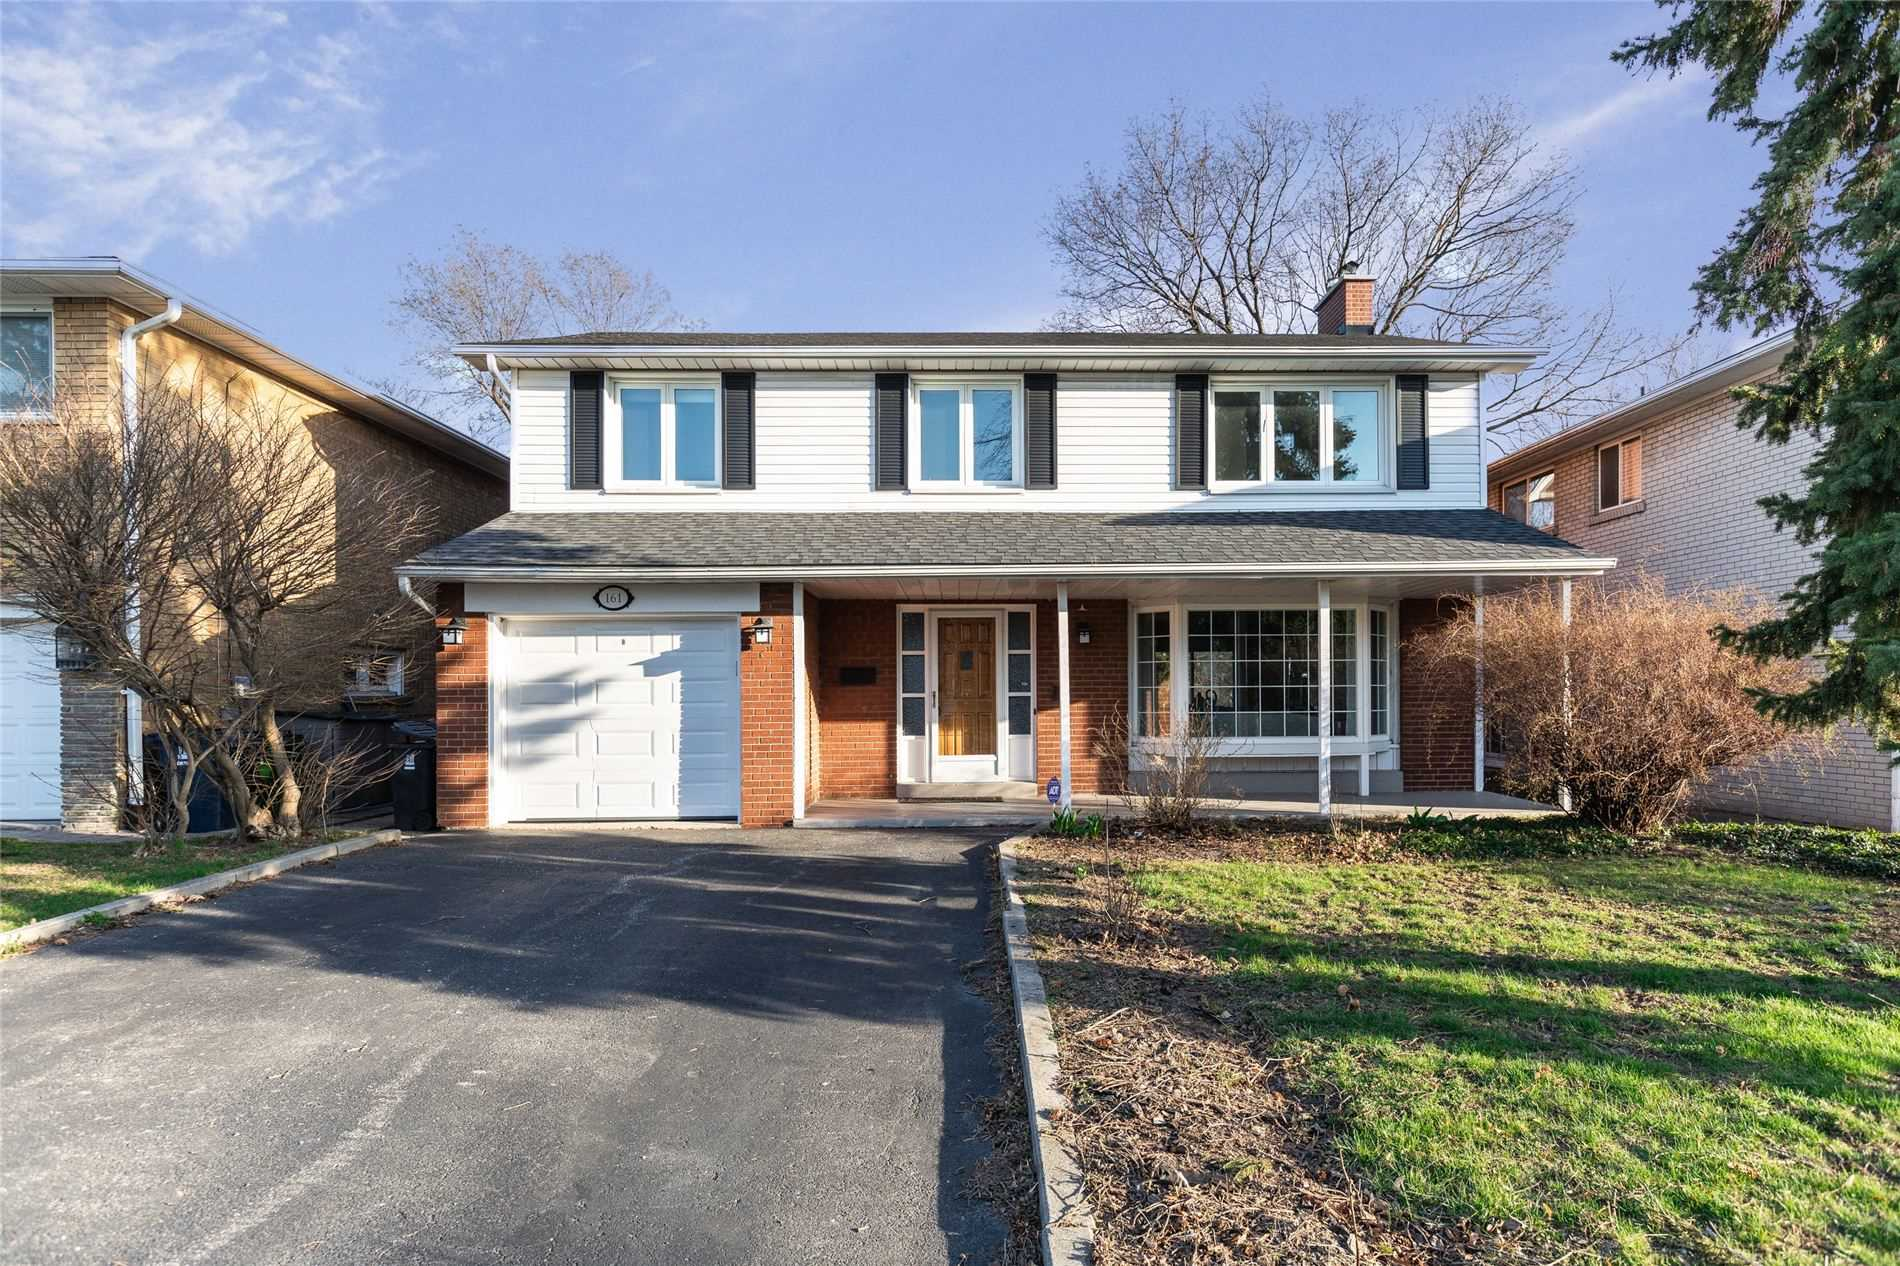 For Sale: 161 Allanhurst Drive, Toronto, ON | 4 Bed, 3 Bath House for $1389000.00. See 33 photos!